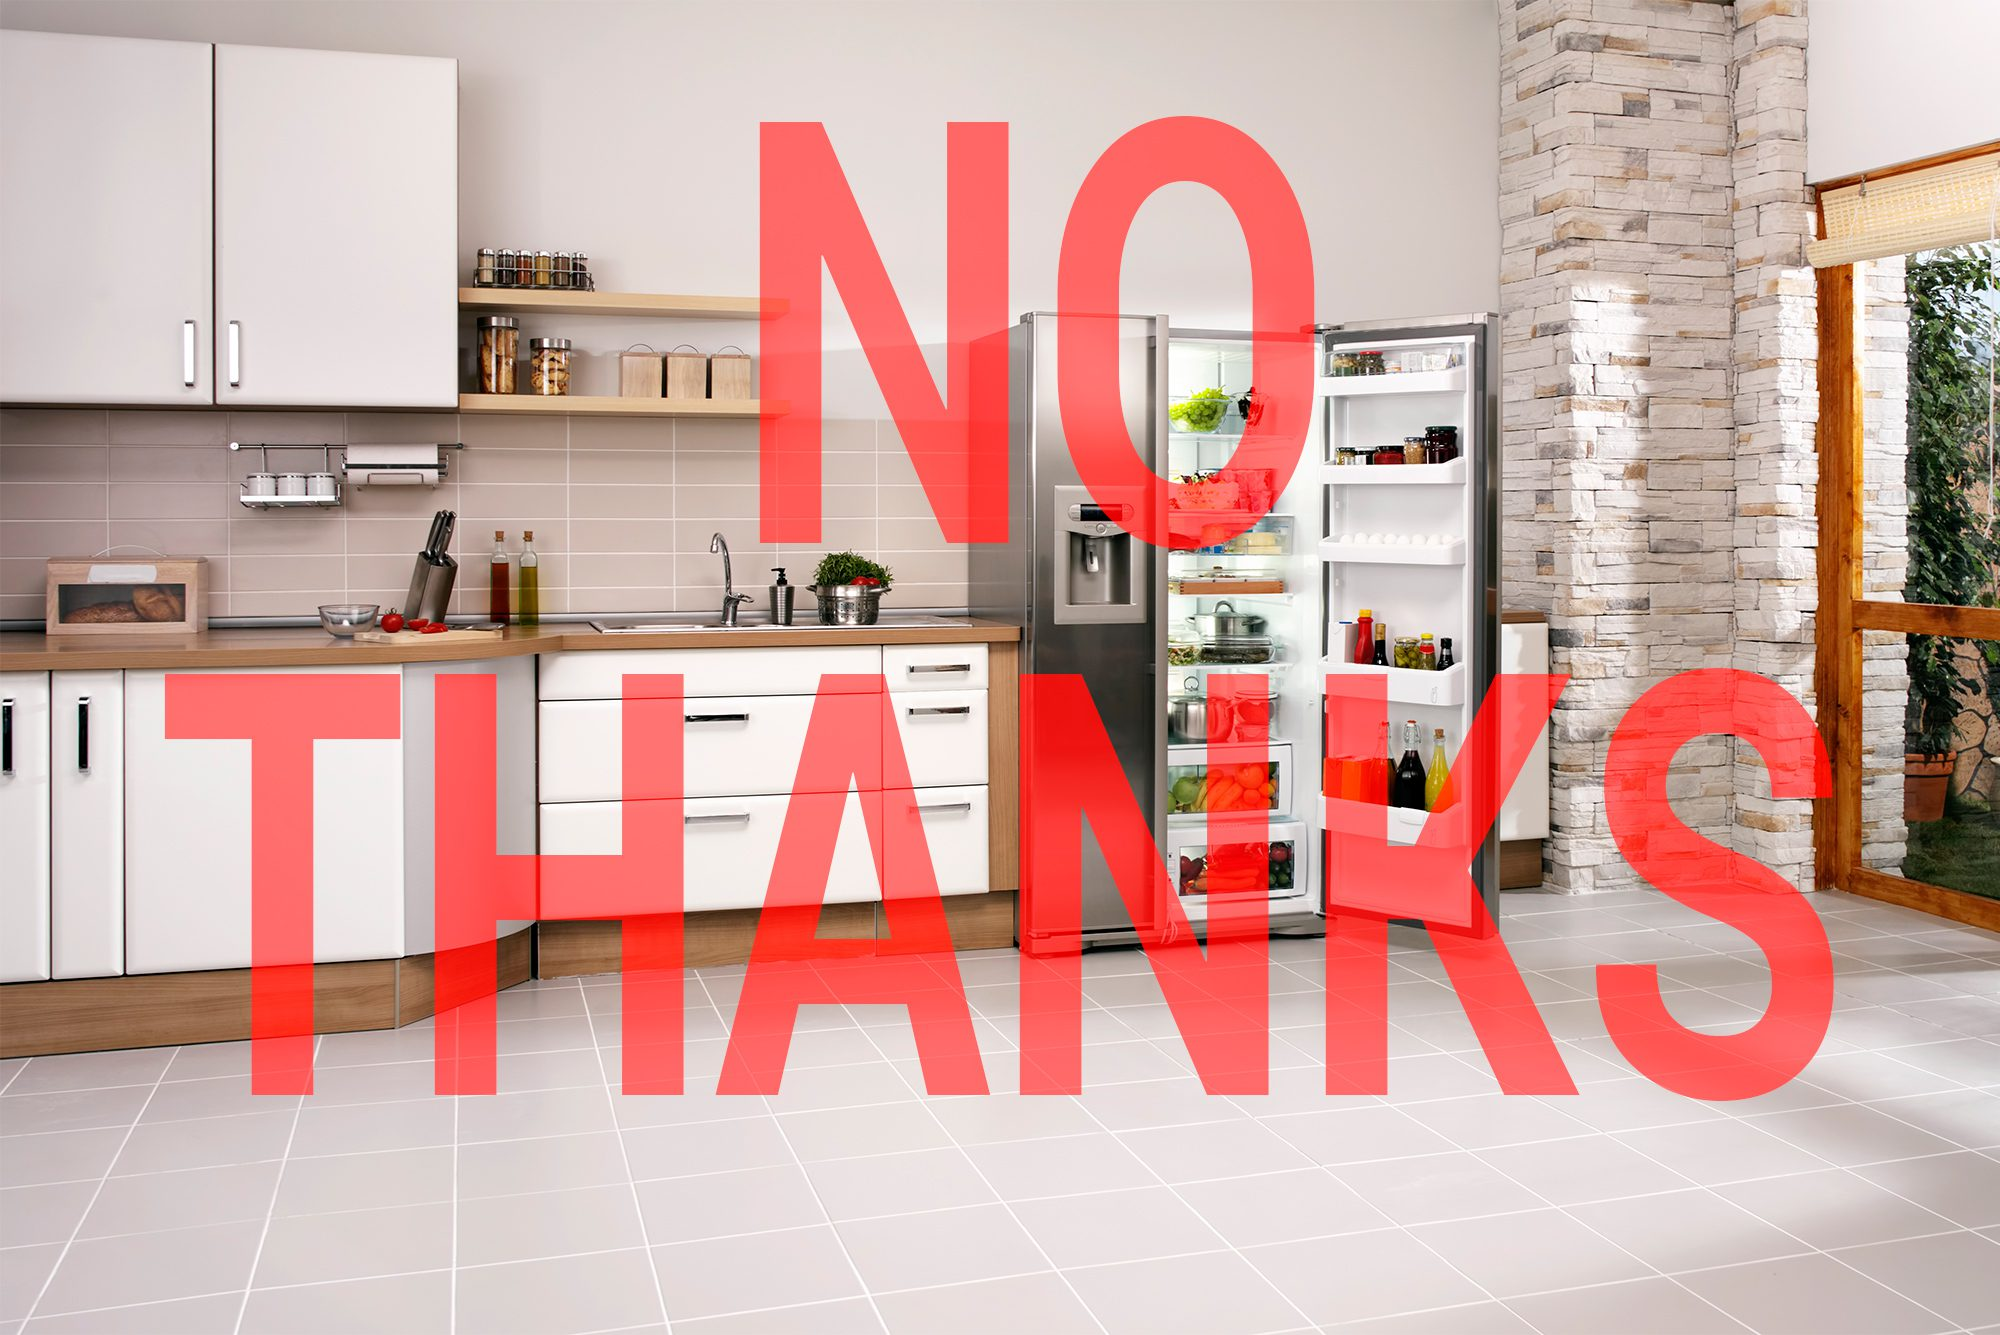 Kitchen Design Open Plan Why Open Kitchens Are Bad And Closed Kitchens Are Good Realtor